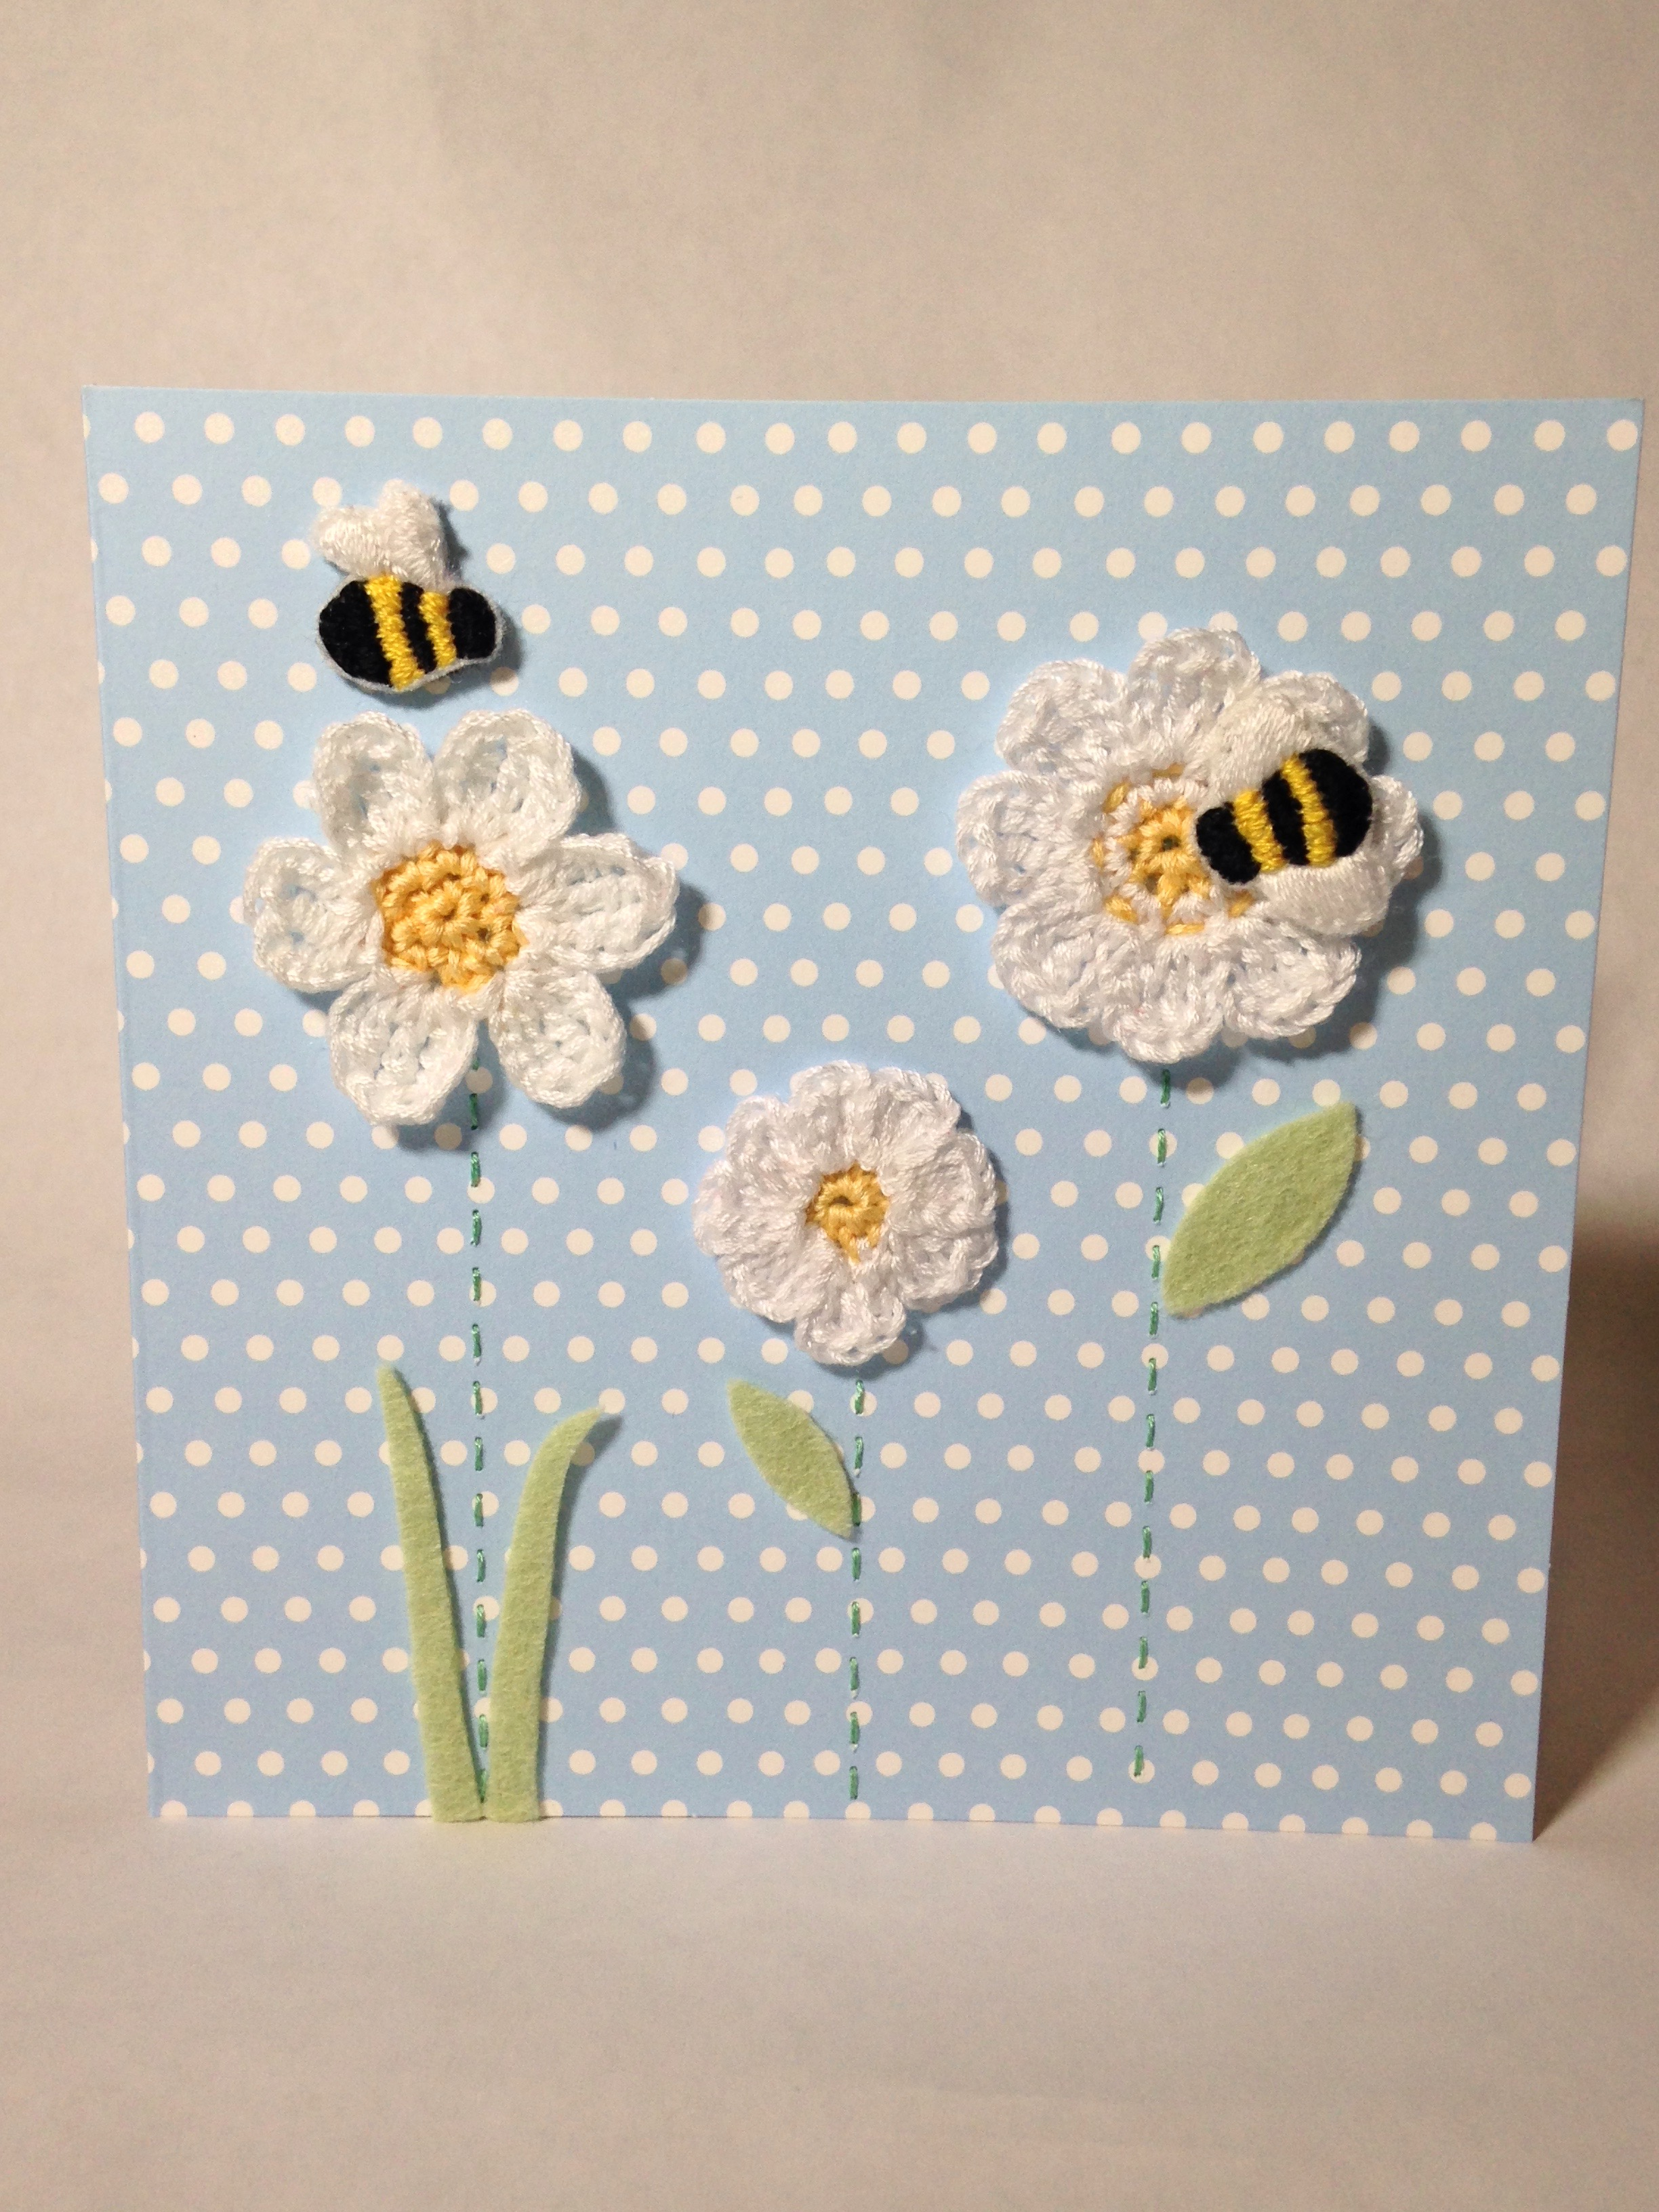 Bumblebee and flowers greetings card.